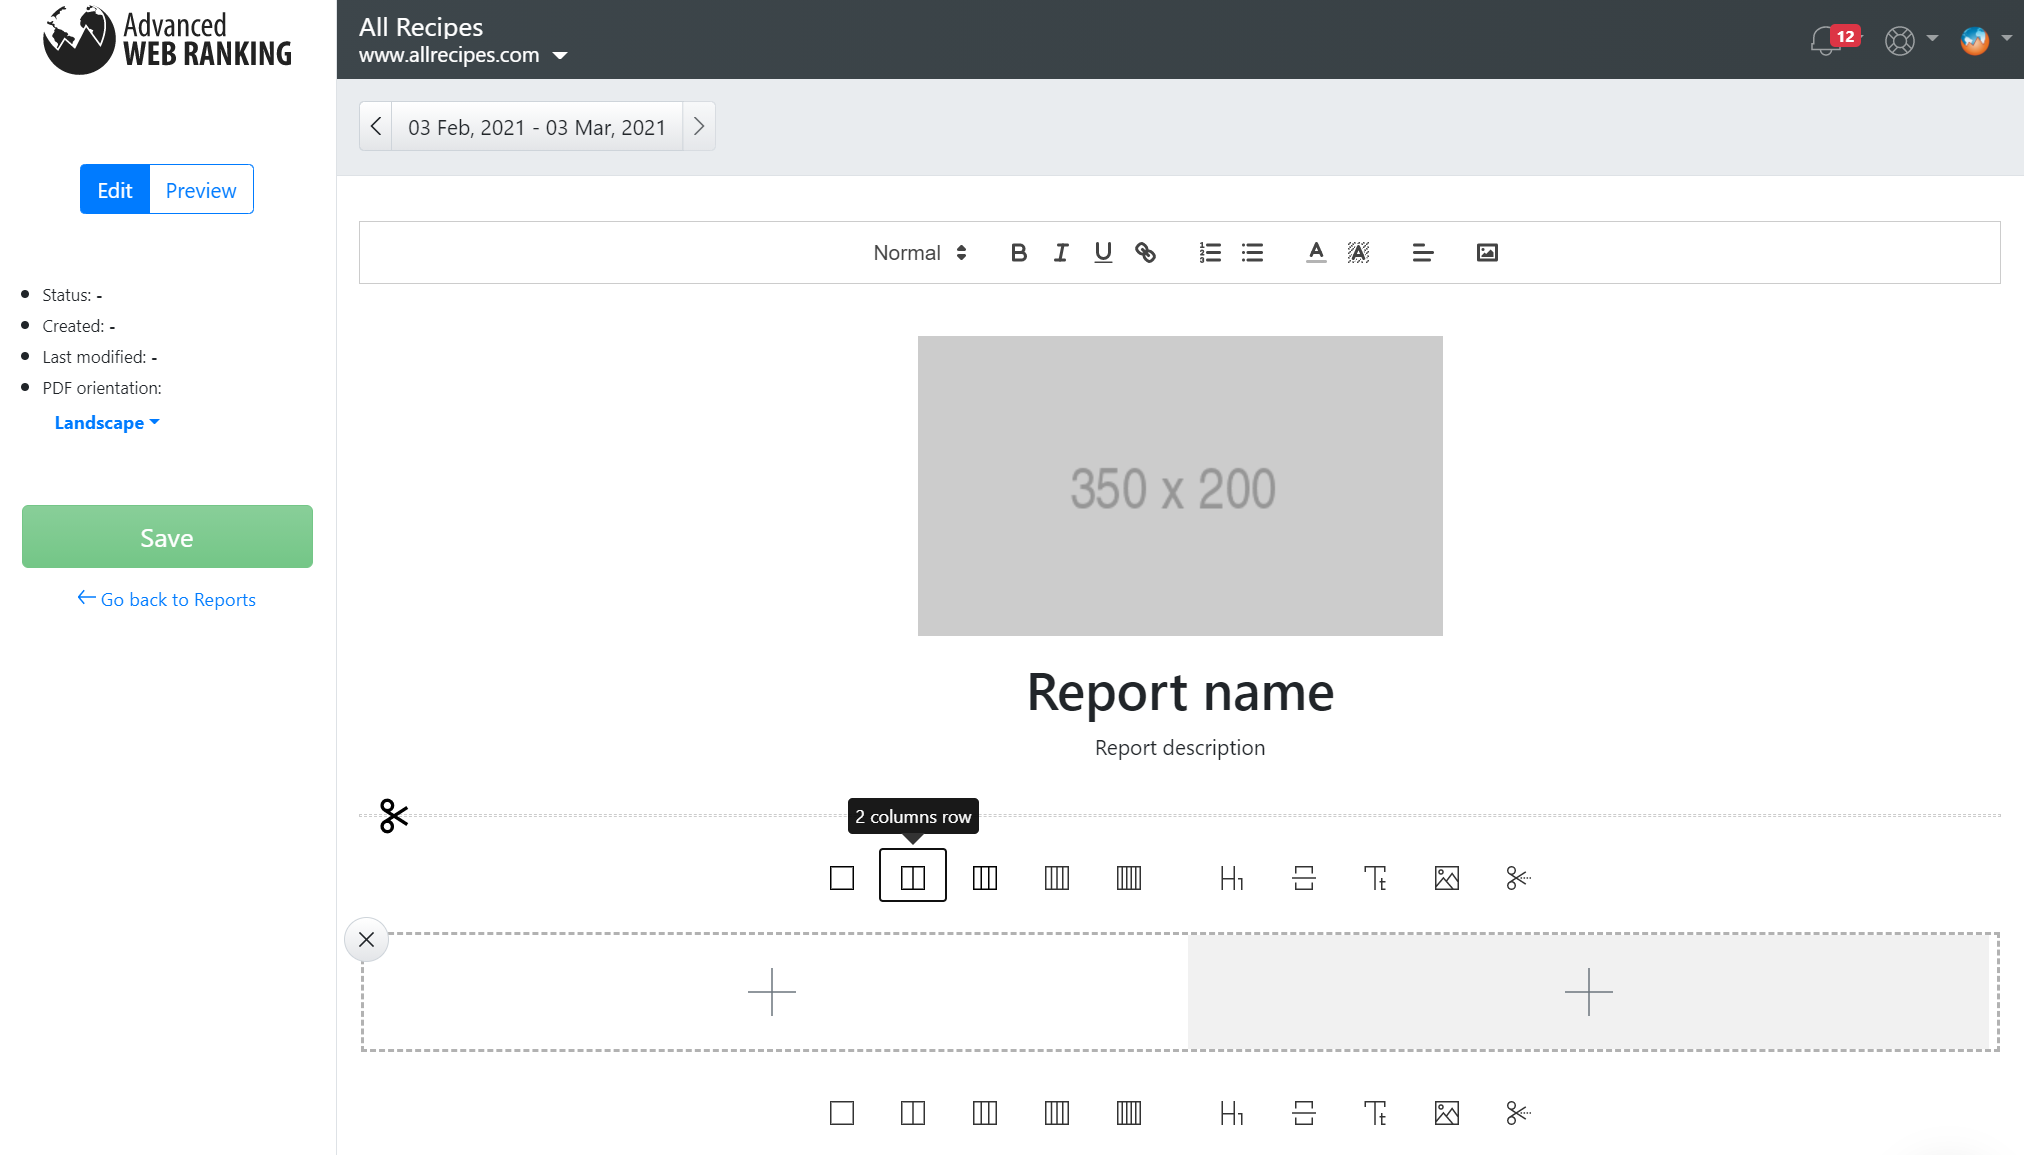 Custom report creation in Advanced Web Ranking using its WYSISYG report editor.